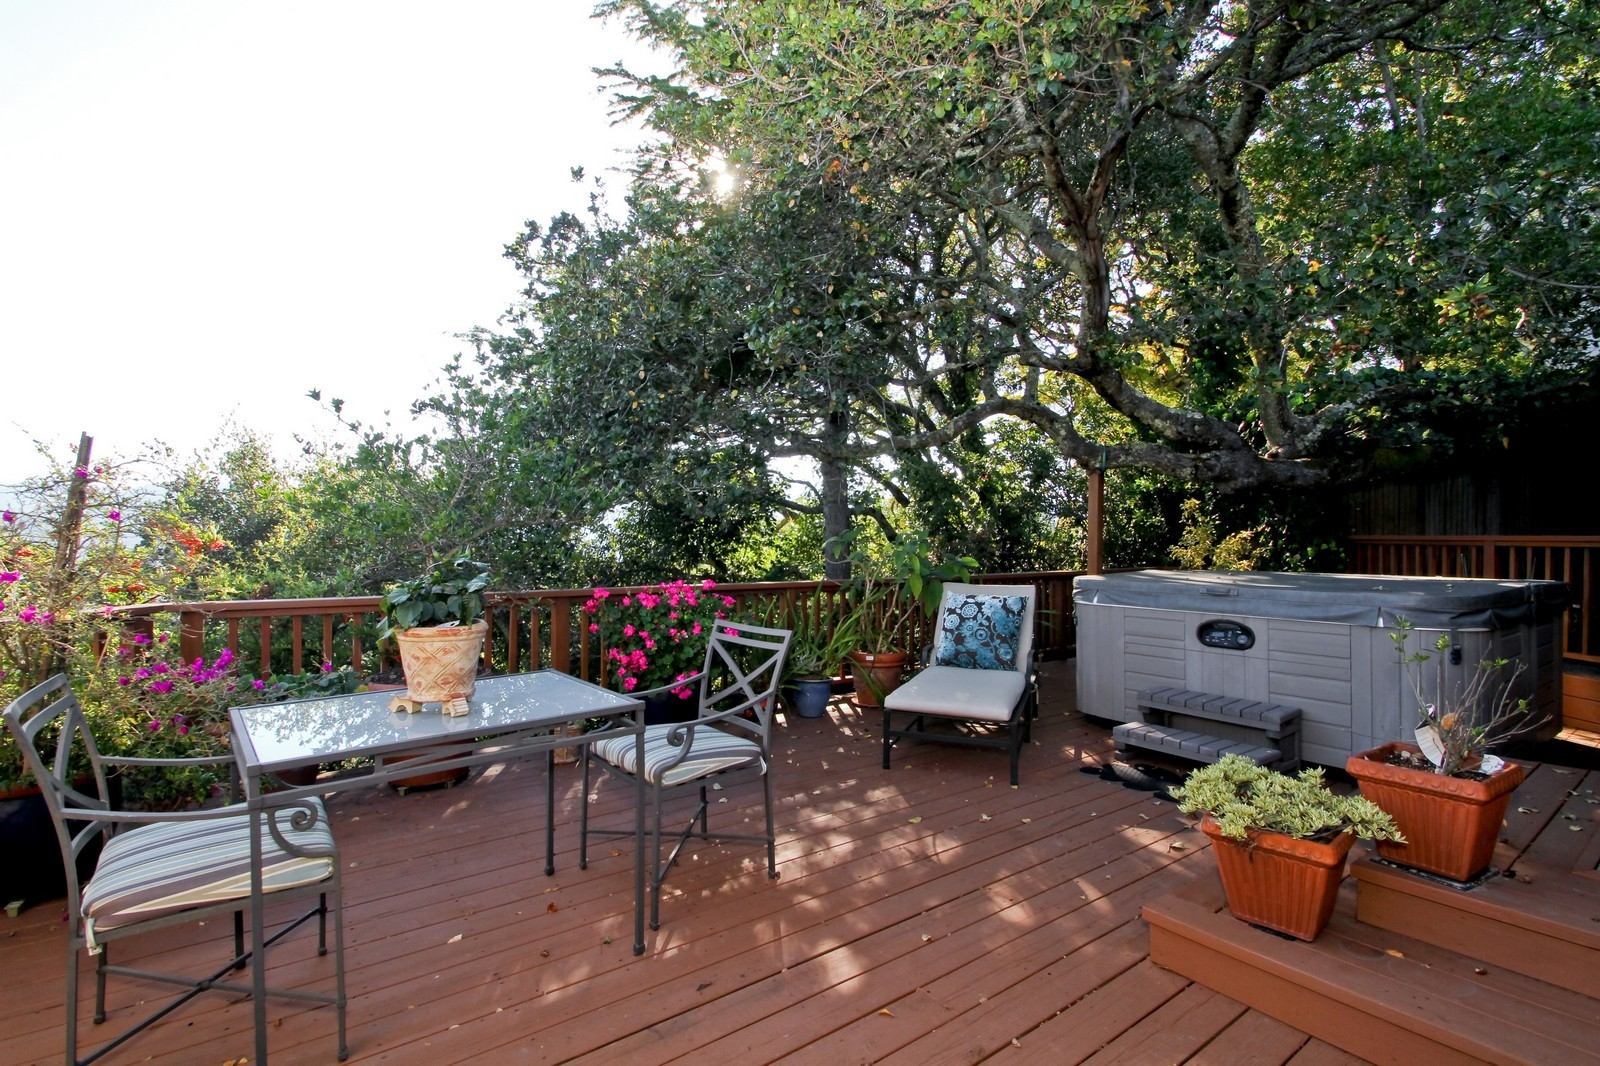 Real Estate Photography - 73 Upper Toyon Drive, Kentfield, CA, 94904 - Spa